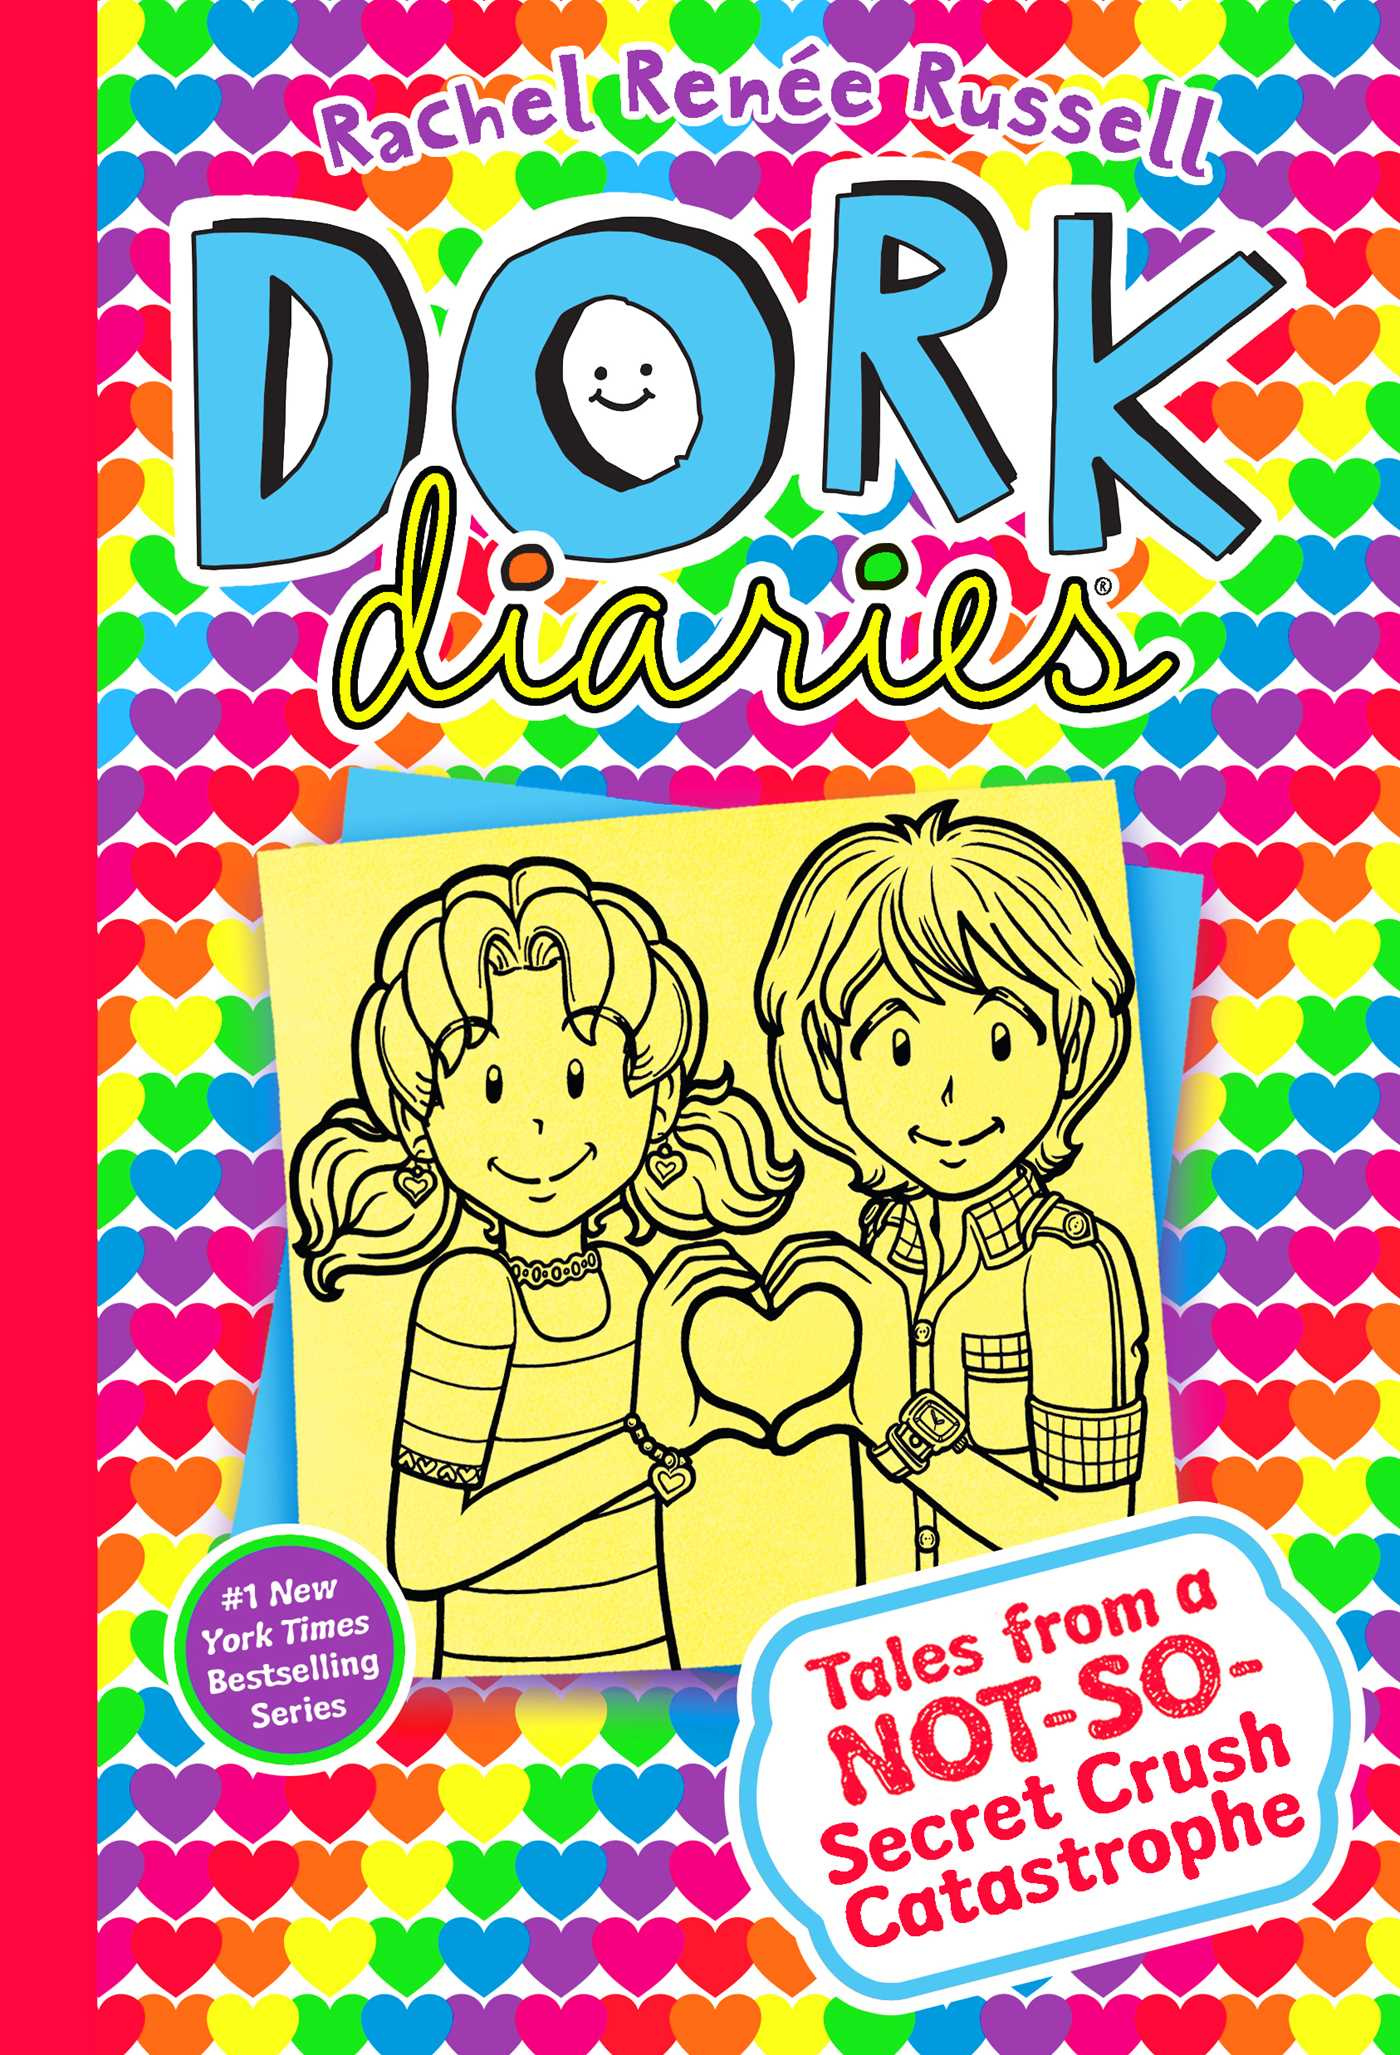 dork diaries Read a free sample or buy dork diaries 5 by rachel renée russell you can read this book with ibooks on your iphone, ipad, ipod touch, or mac.